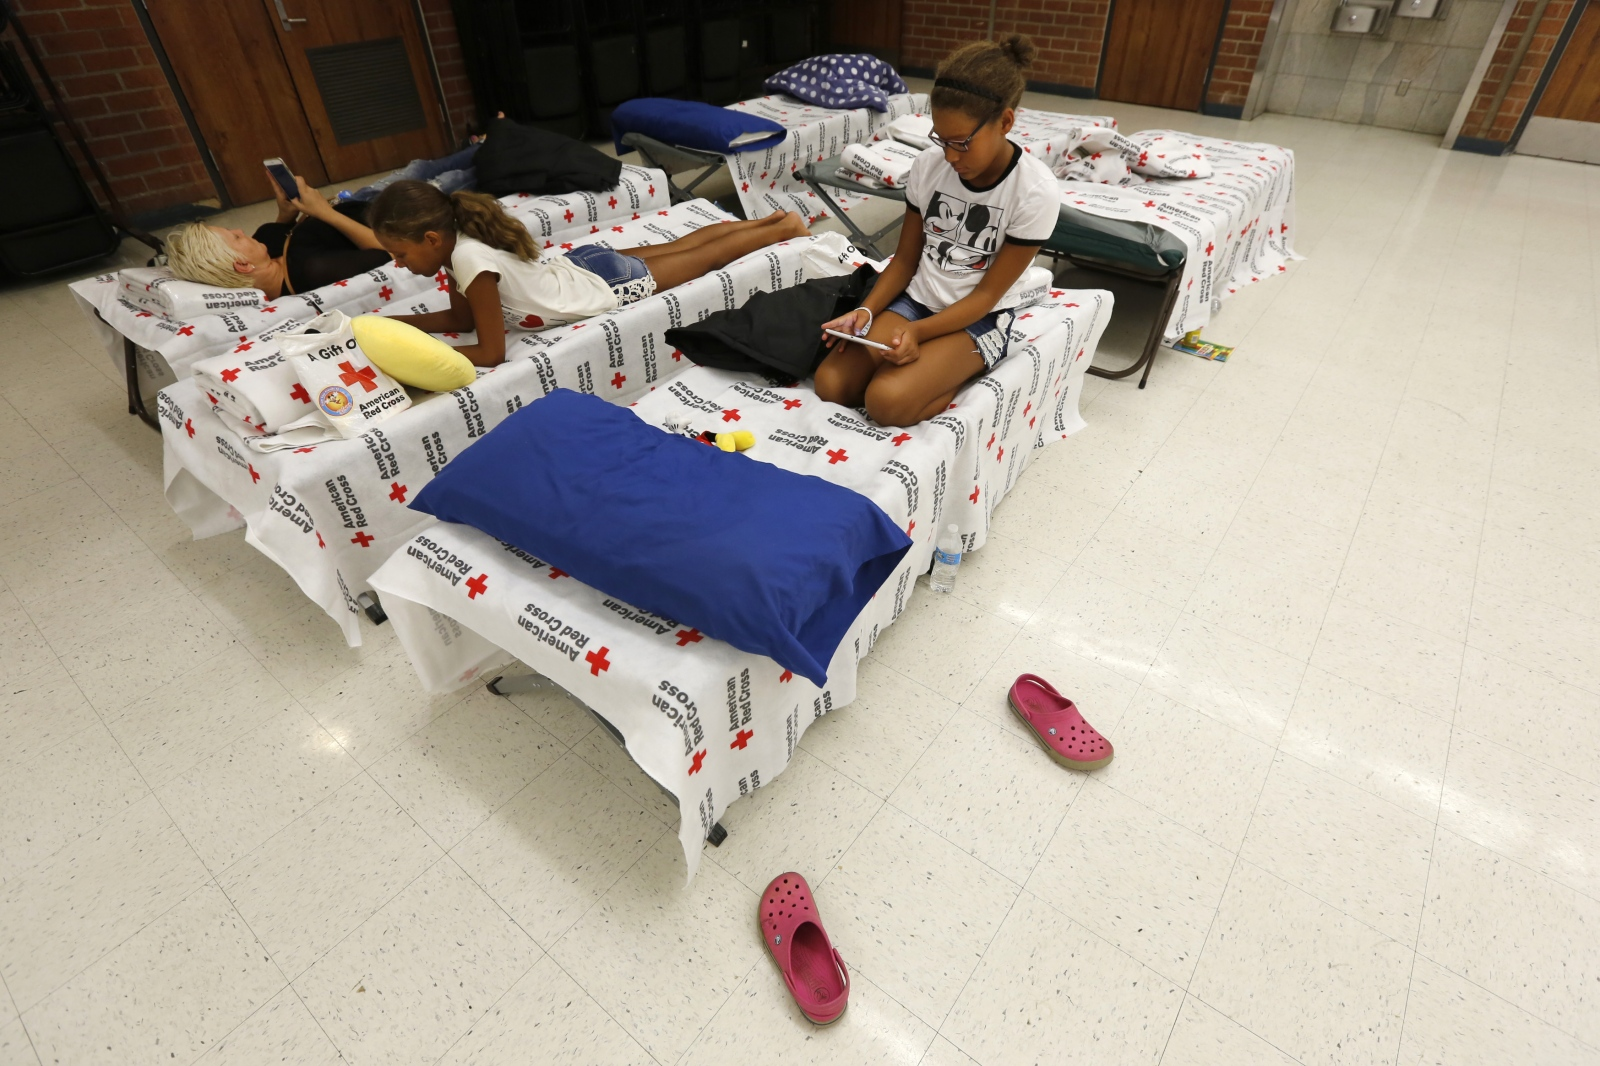 The Kellum family rests in the Hart High School cafeteria after the evacuation center was moved from the gym to the cafeteria to provide air conditioning on Sunday, July 24, 2016. Katharine Lotze/The Signal